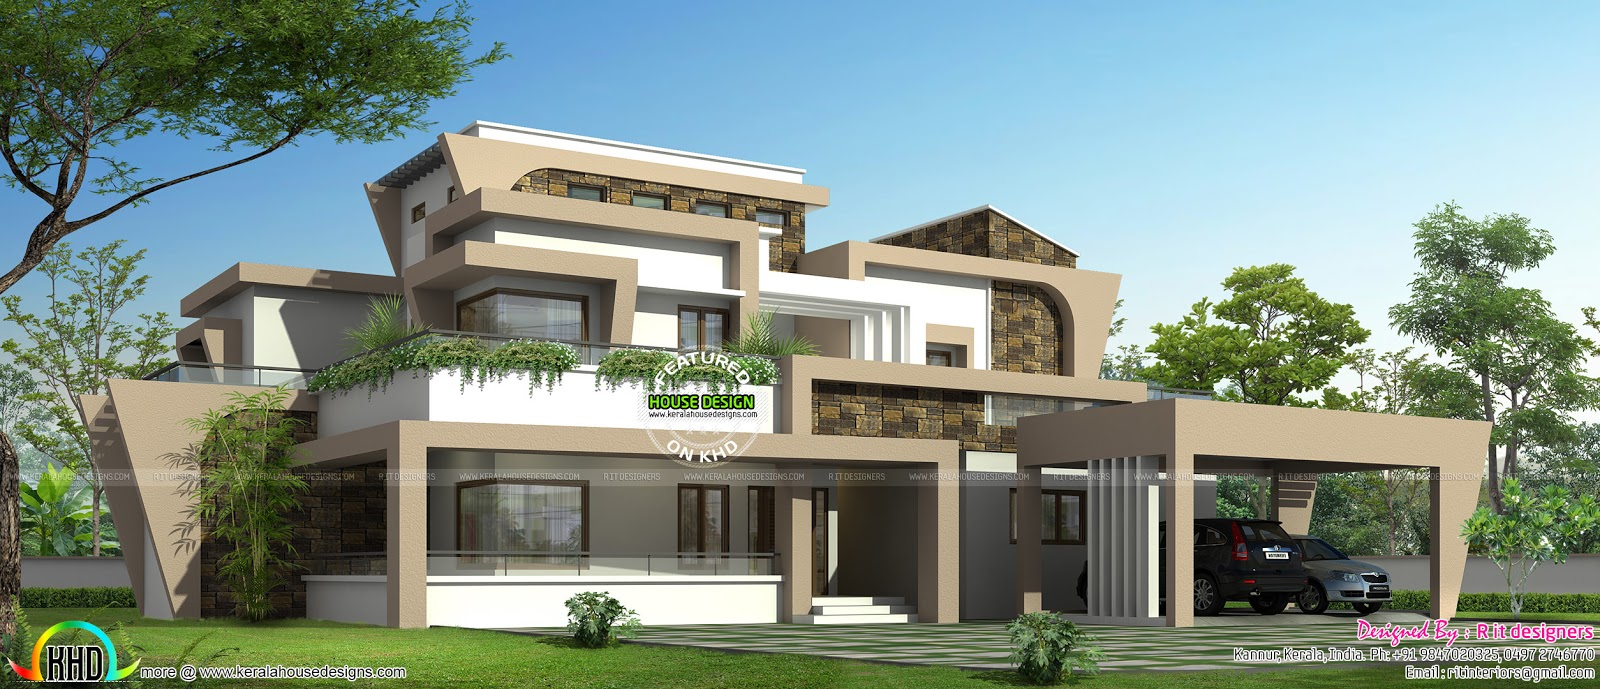 Unique modern home design in kerala kerala home design for Unique small house designs